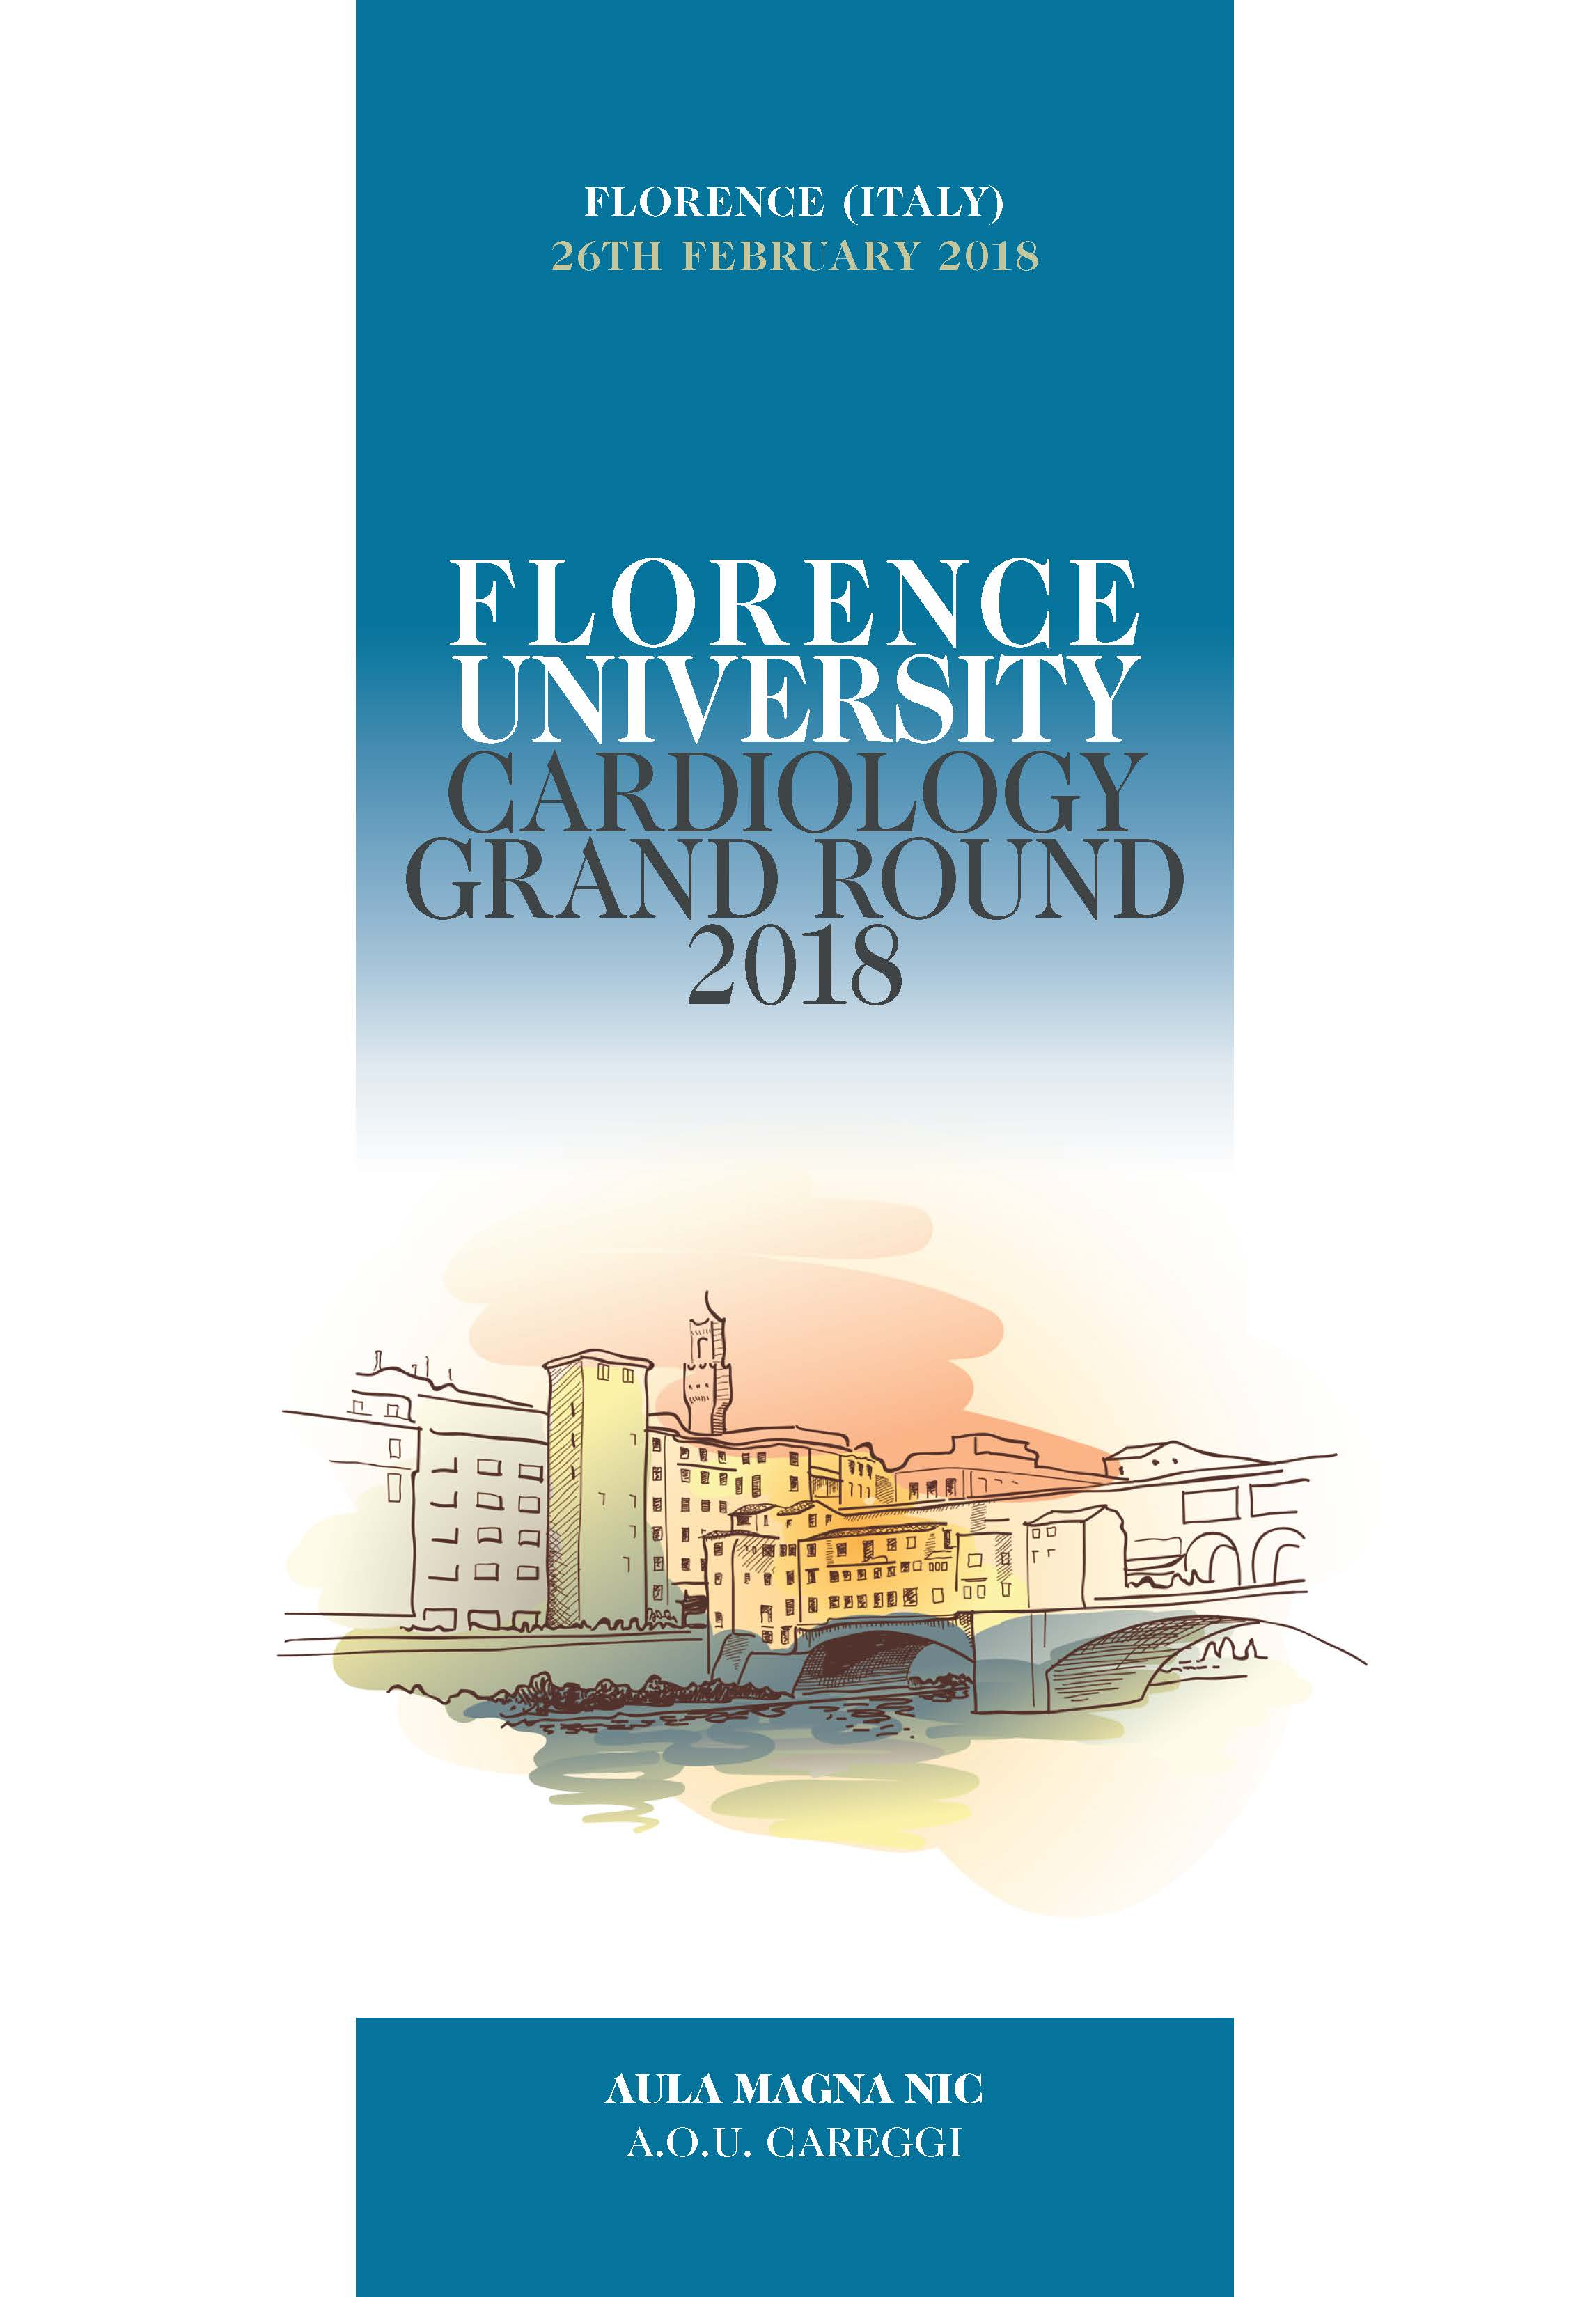 Florence University Cardiology Grand Rounds 2018